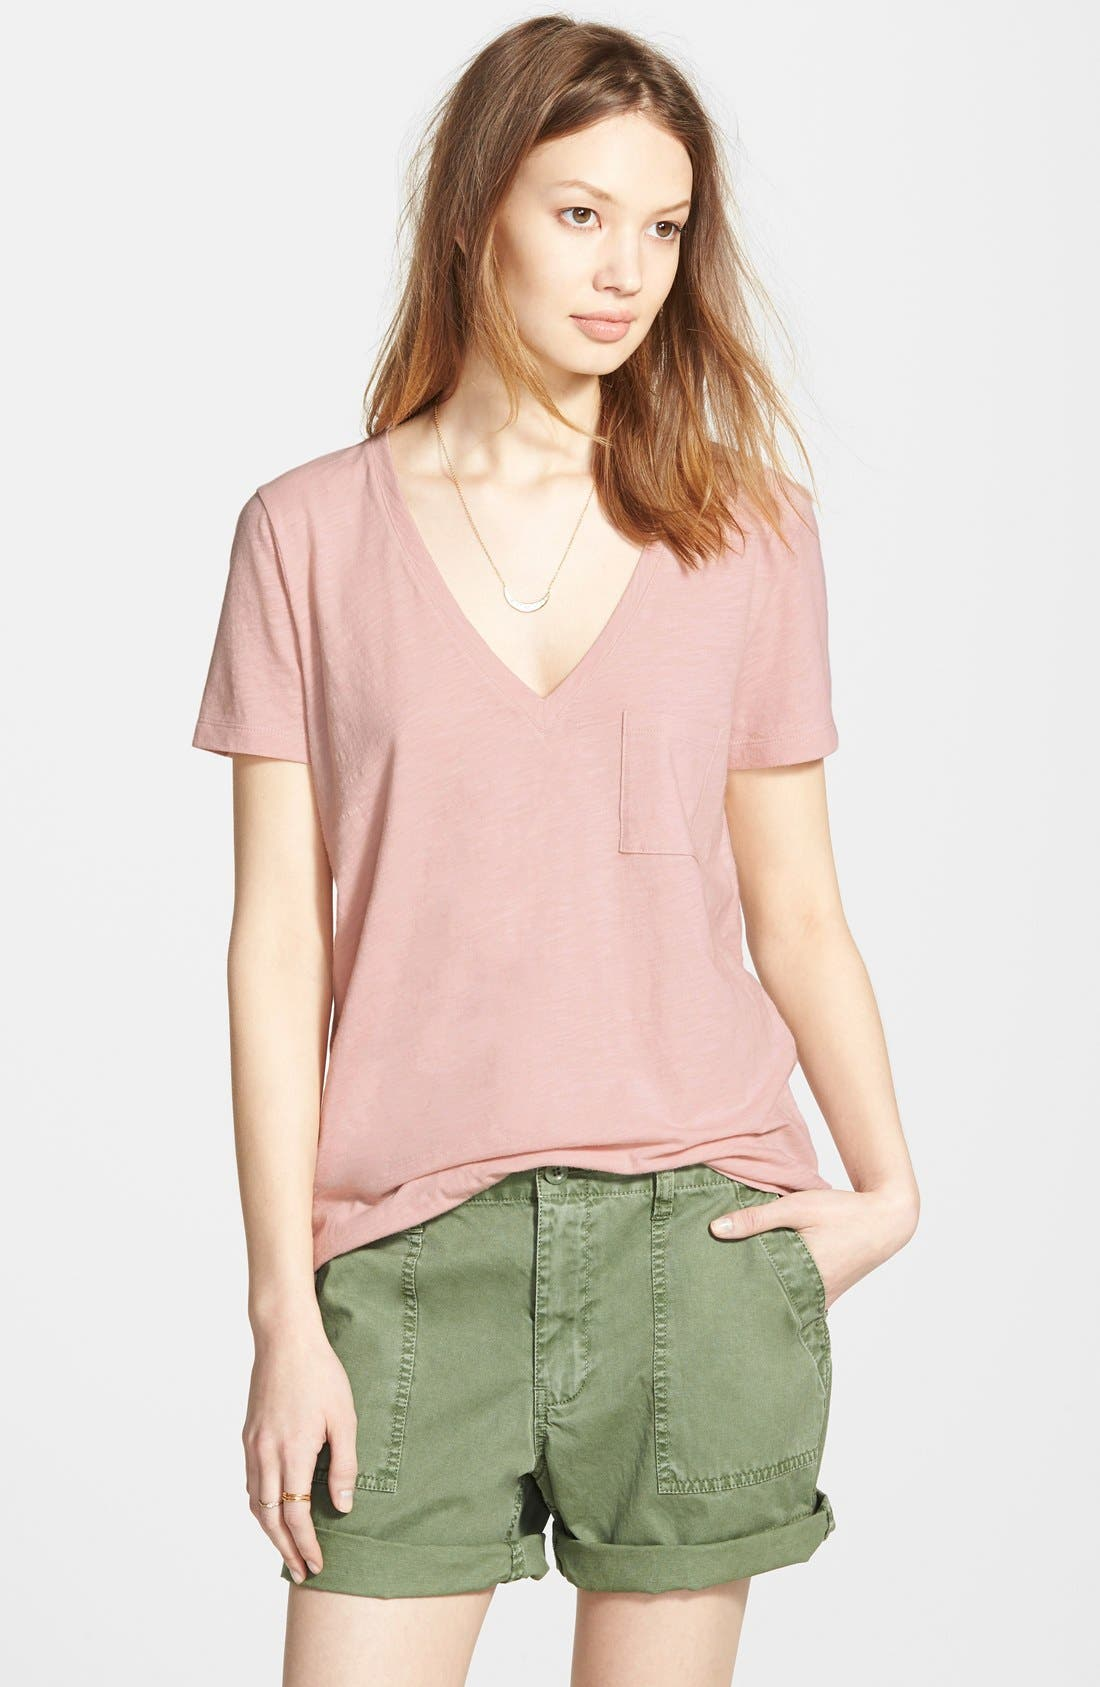 V-Neck Tops for Women | Nordstrom